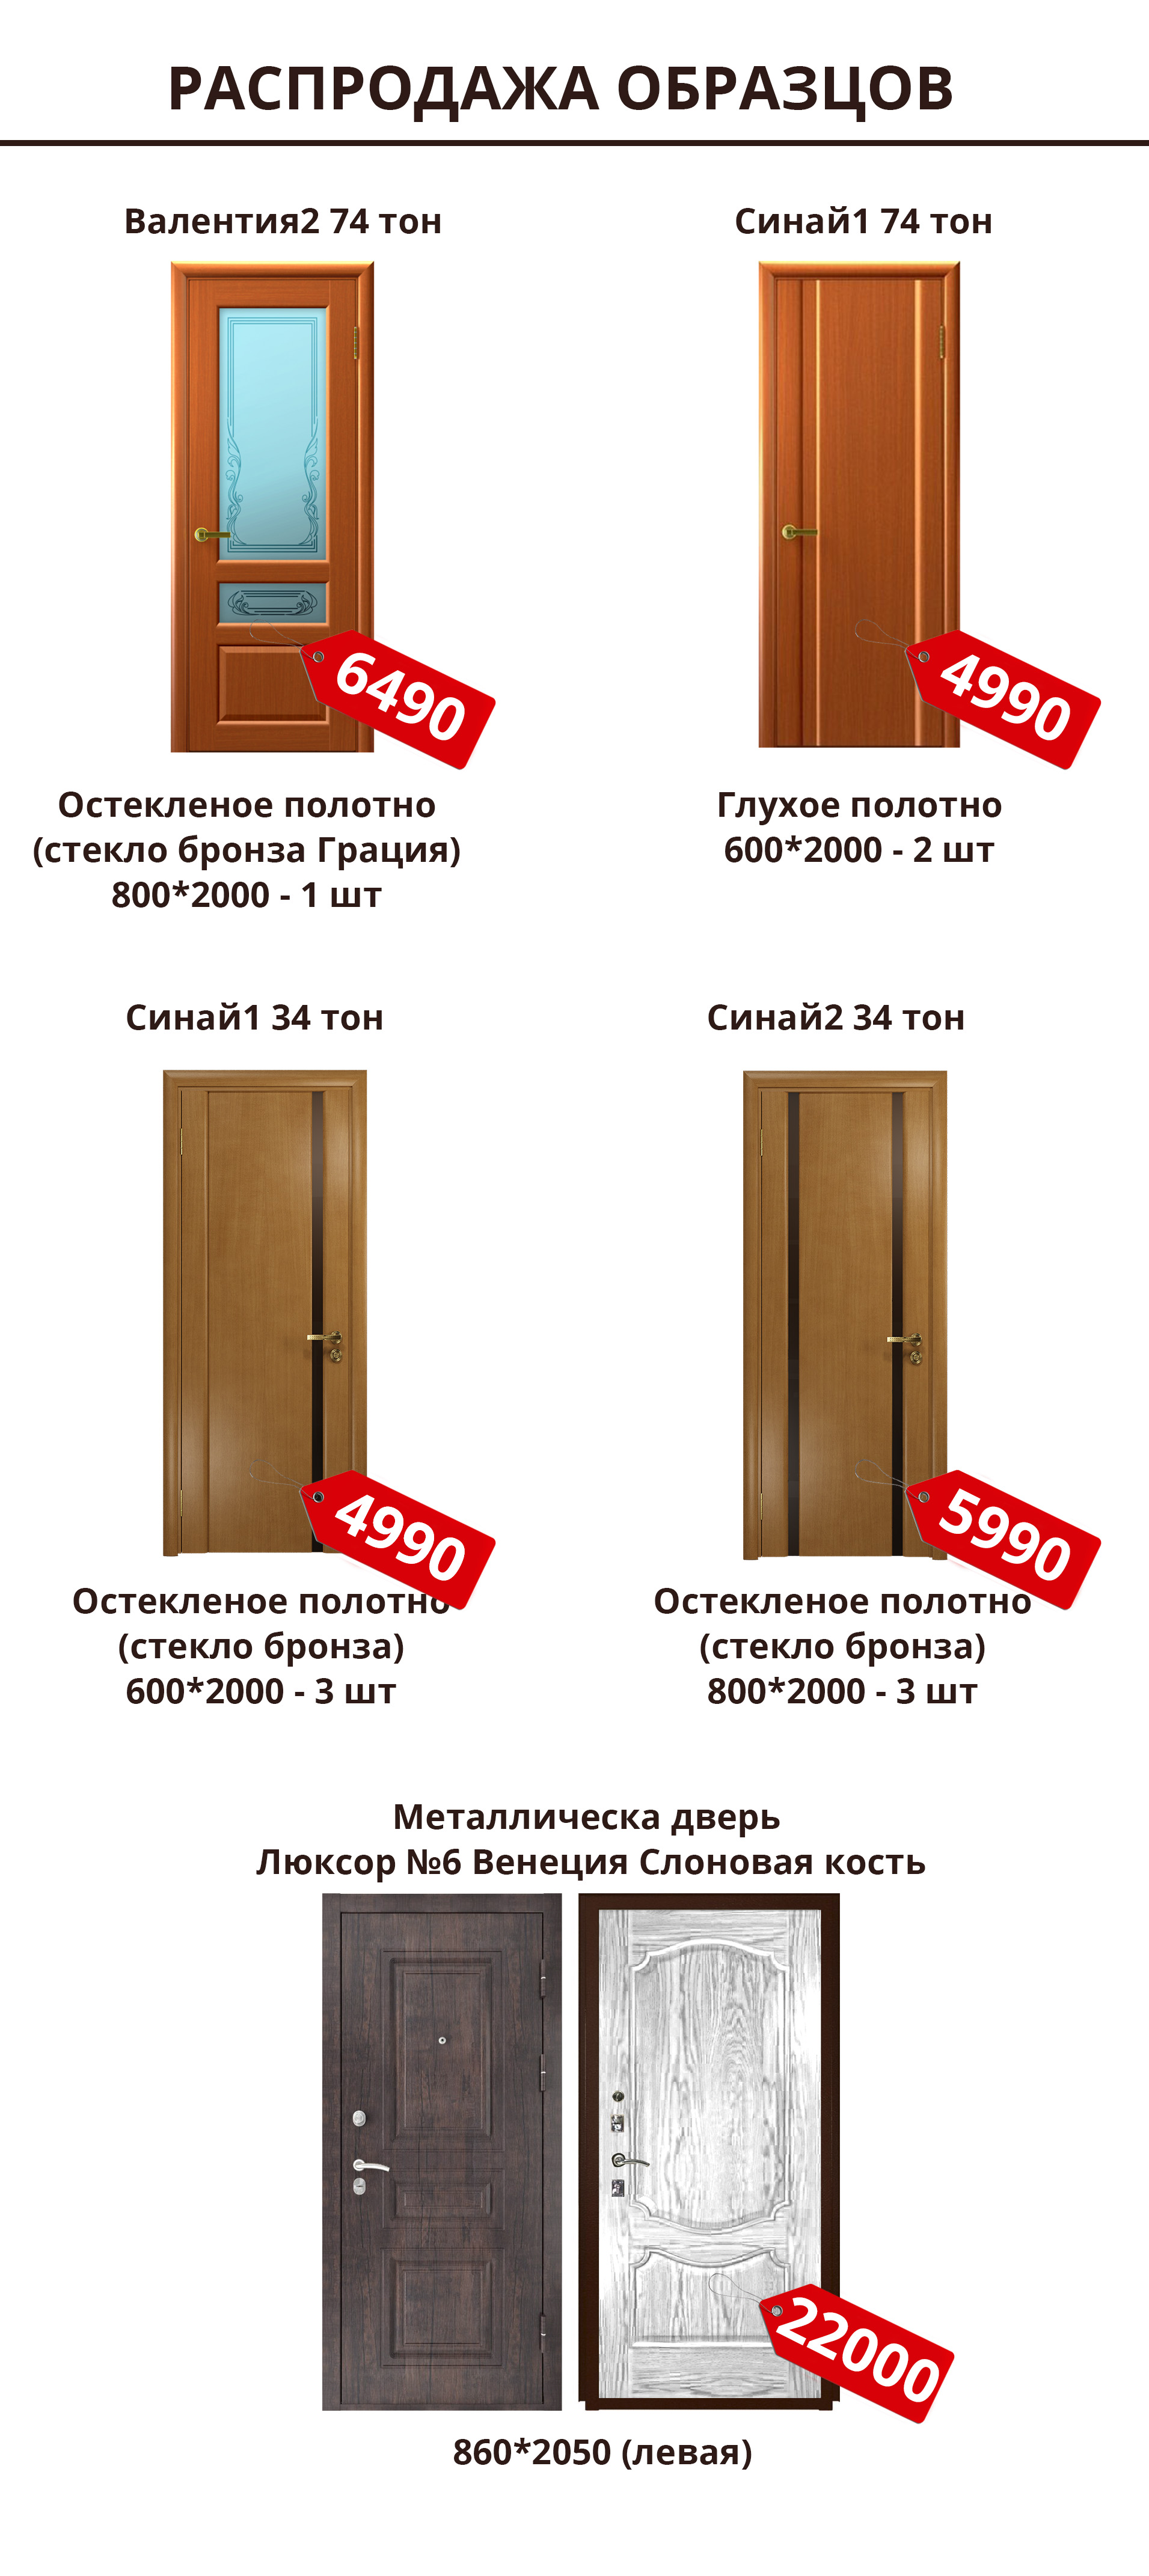 http://dveriulyanovskie.ru/images/upload/РАСПРОДАЖА%20ОБРАЗЦОВ2.jpg